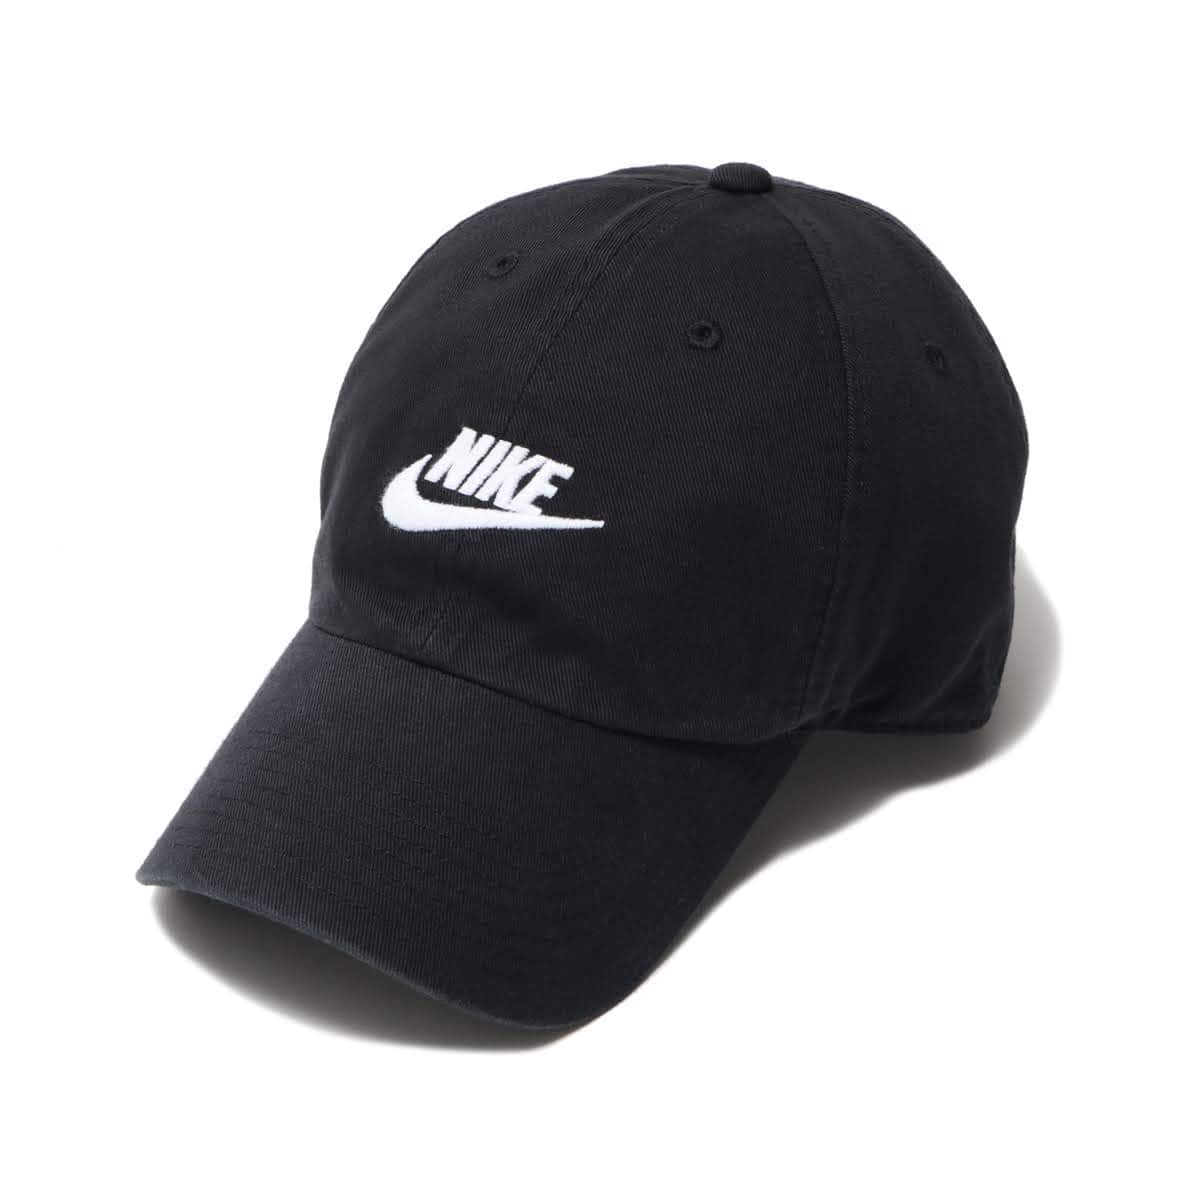 NIKE U NSW H86 CAP FUTURA WASHED BLACK/BLACK/WHITE 19SU-I_photo_large